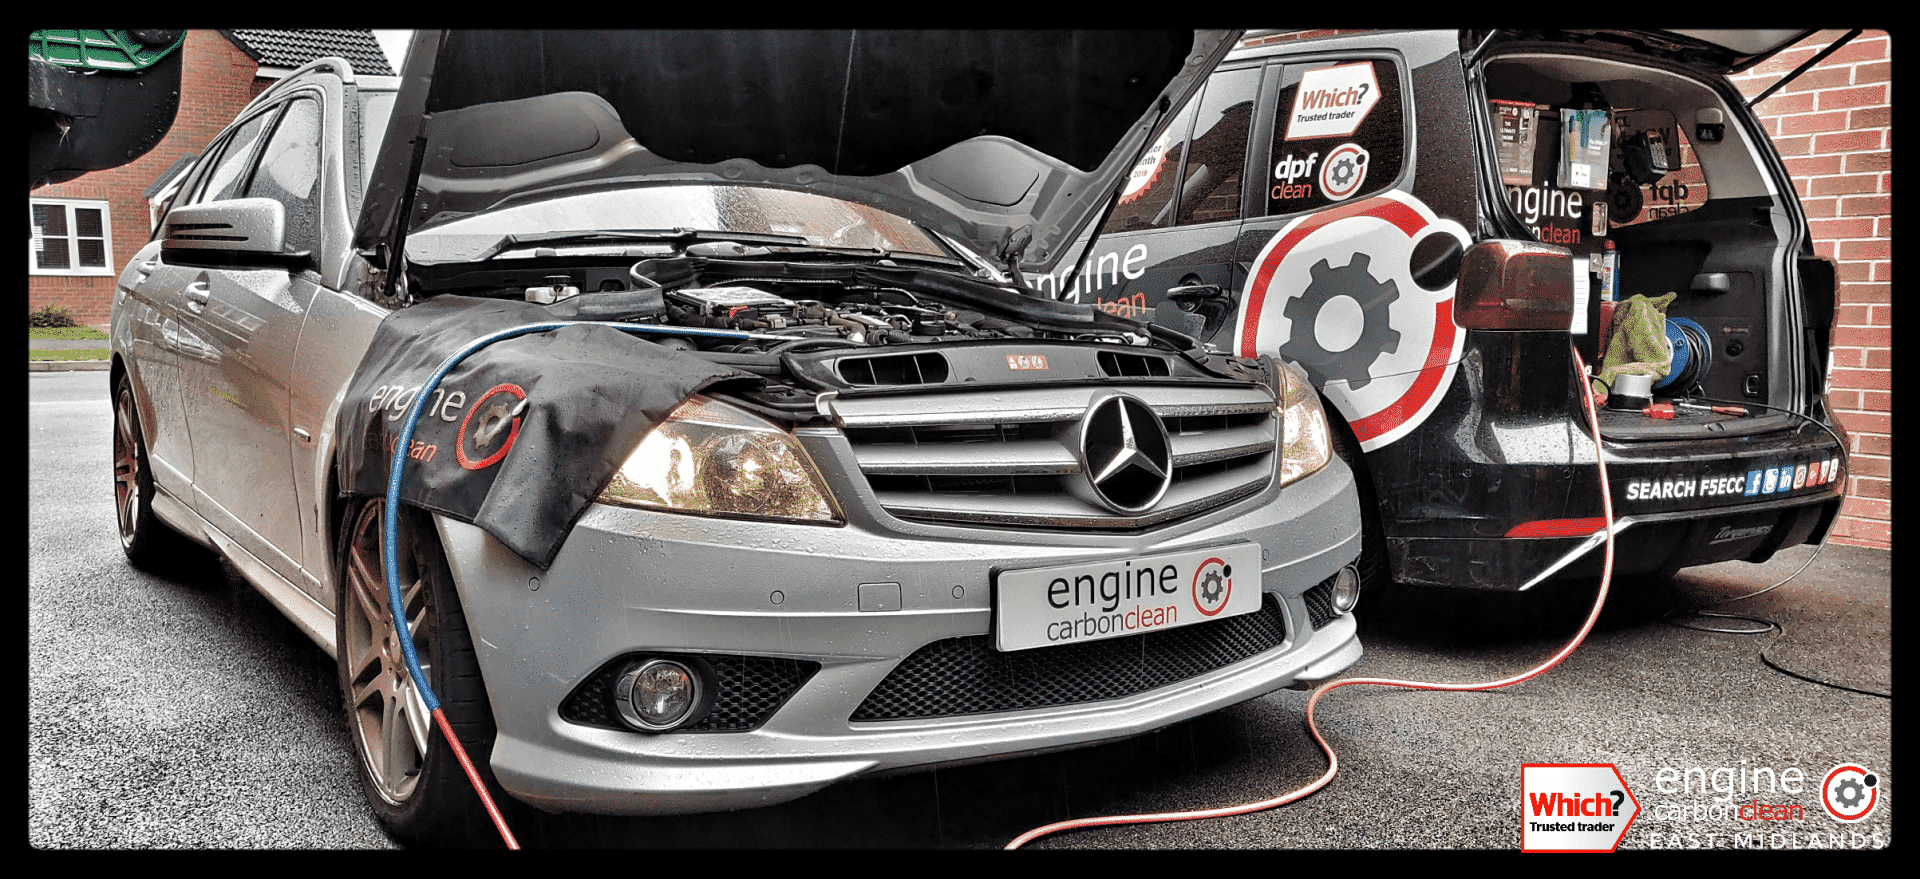 Just bought a vehicle? Diagnostic Consultation and Engine Carbon Clean - Mercedes C220 (2010 - 70,537 miles)